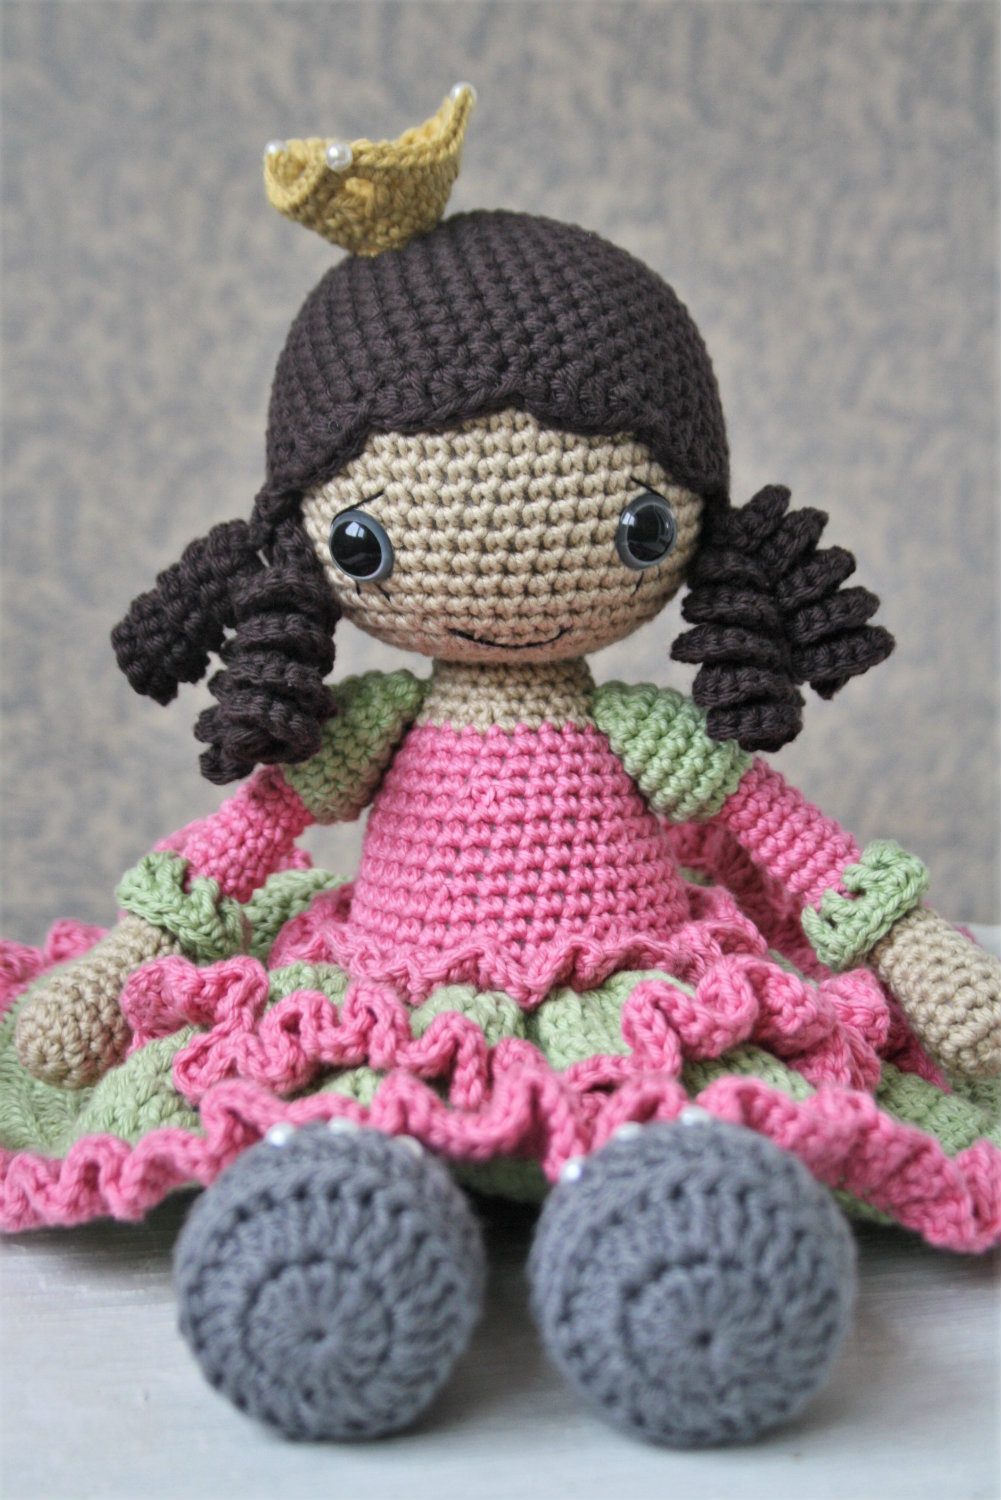 Amigurumi Today - Free amigurumi patterns and amigurumi tutorials | 1500x1001